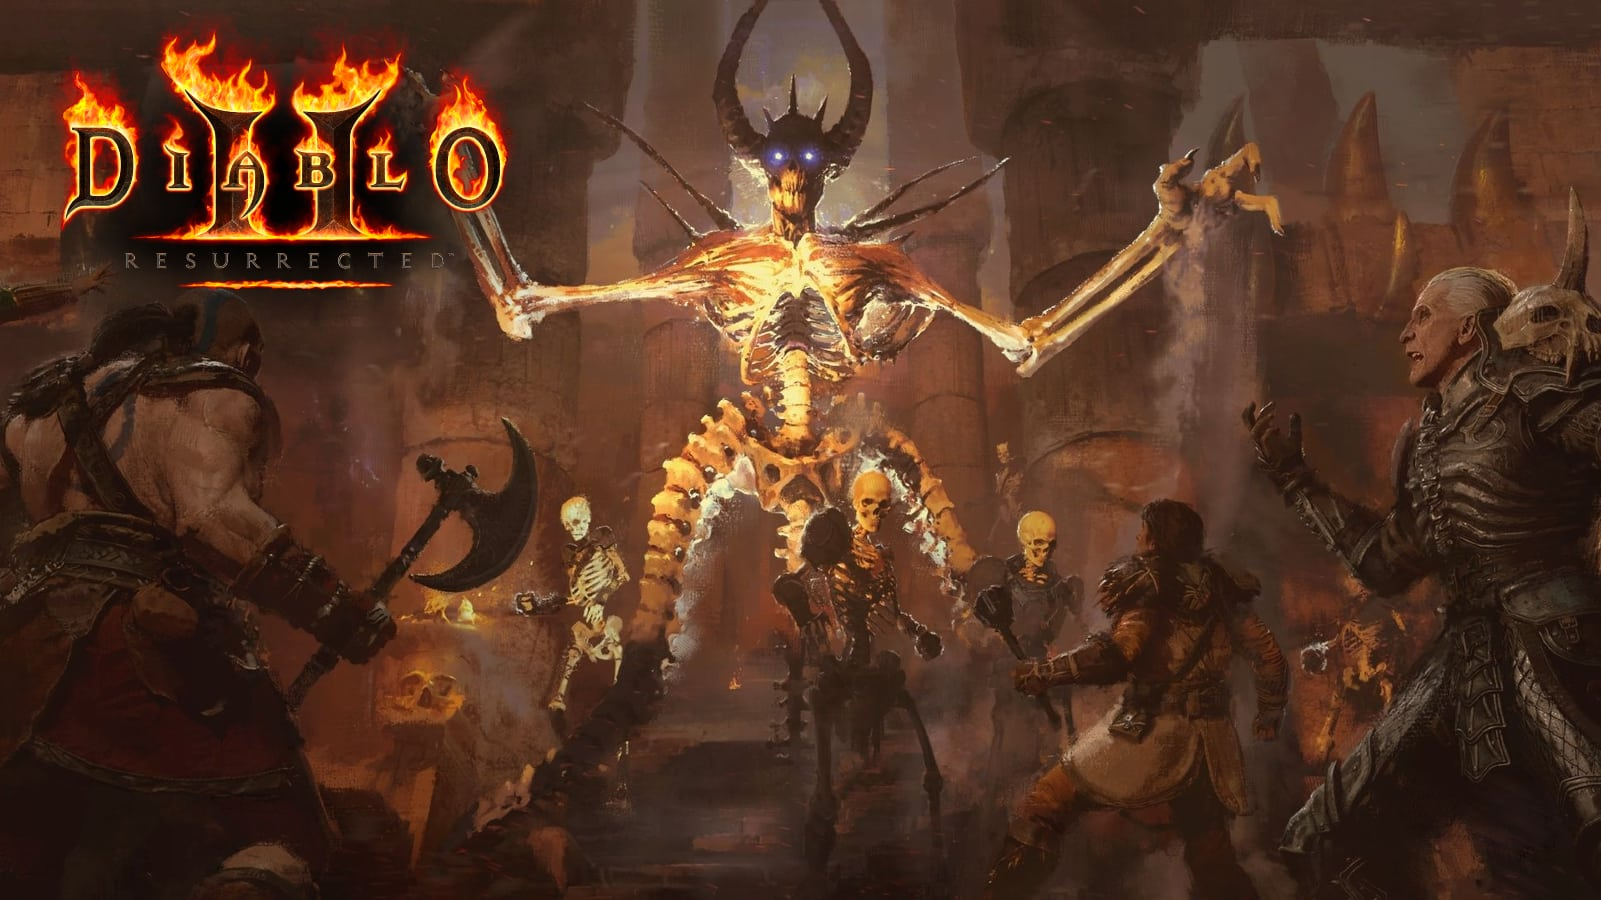 Diablo 2: Resurrected Beginner's Guide - Everything you need to know as a beginner